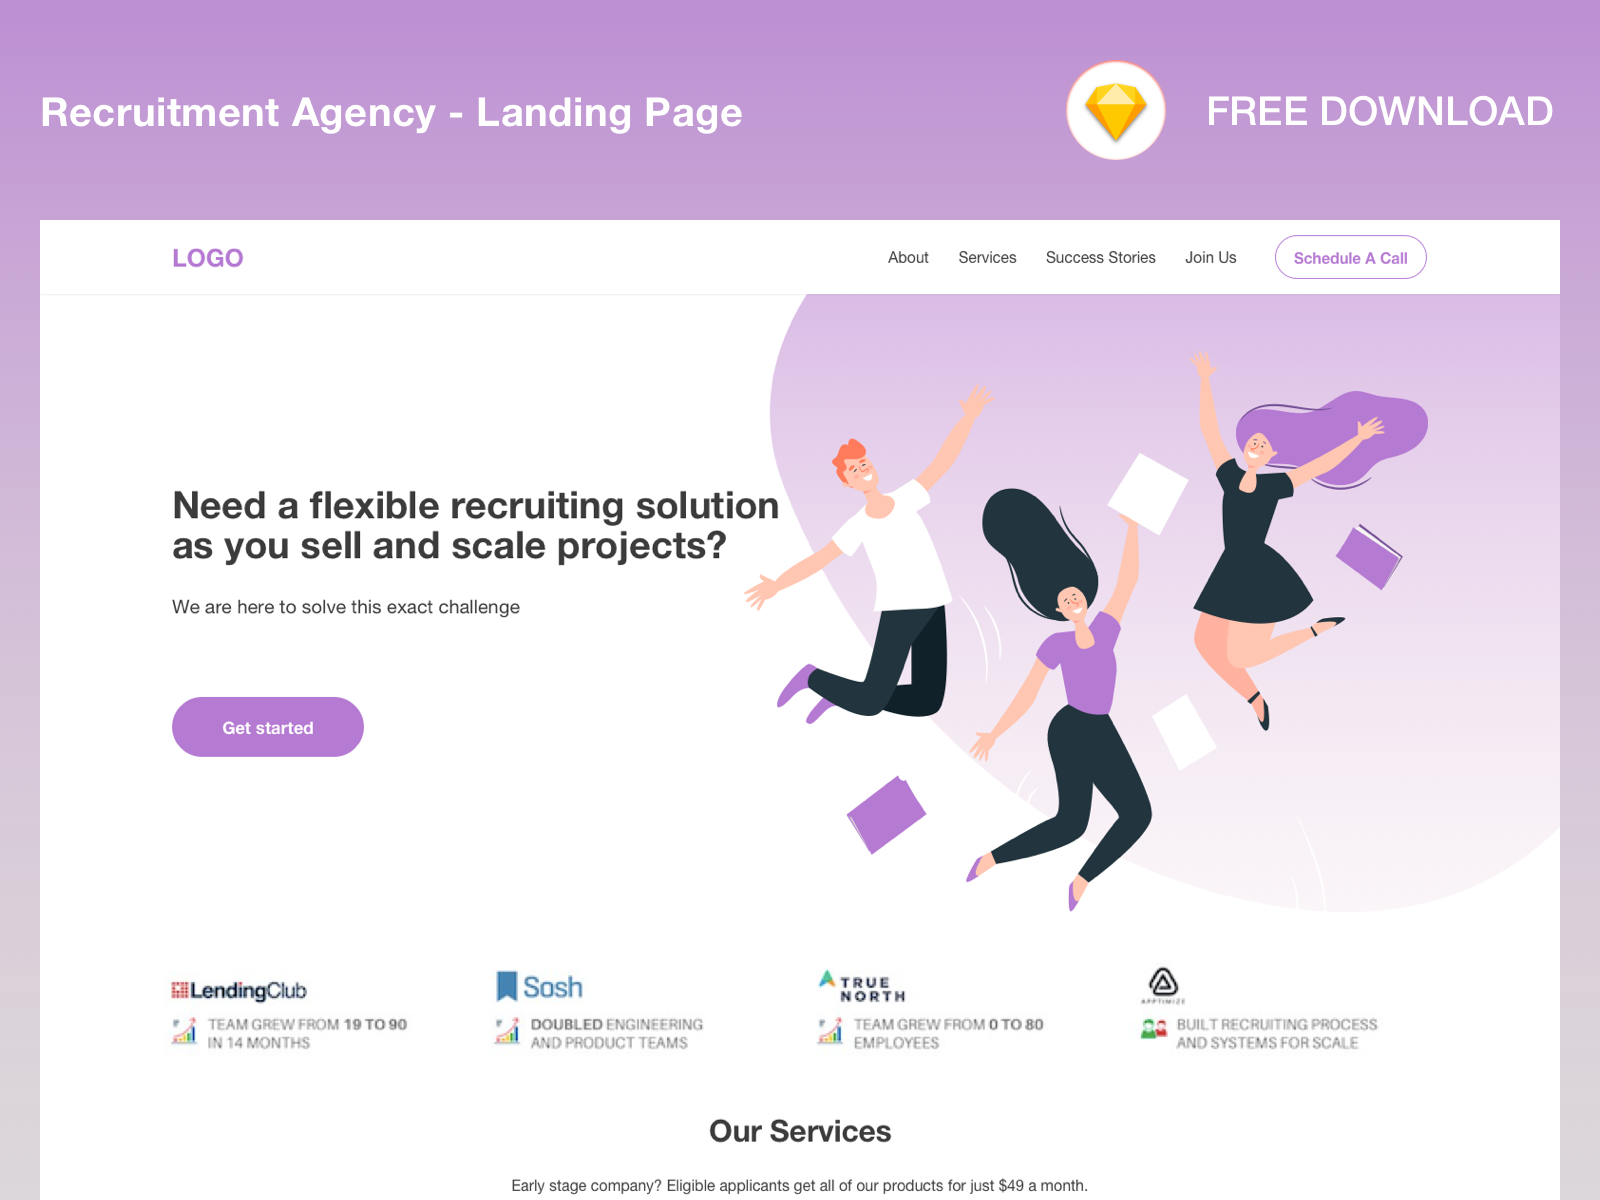 Recruitment Agency_Landing Page cover image